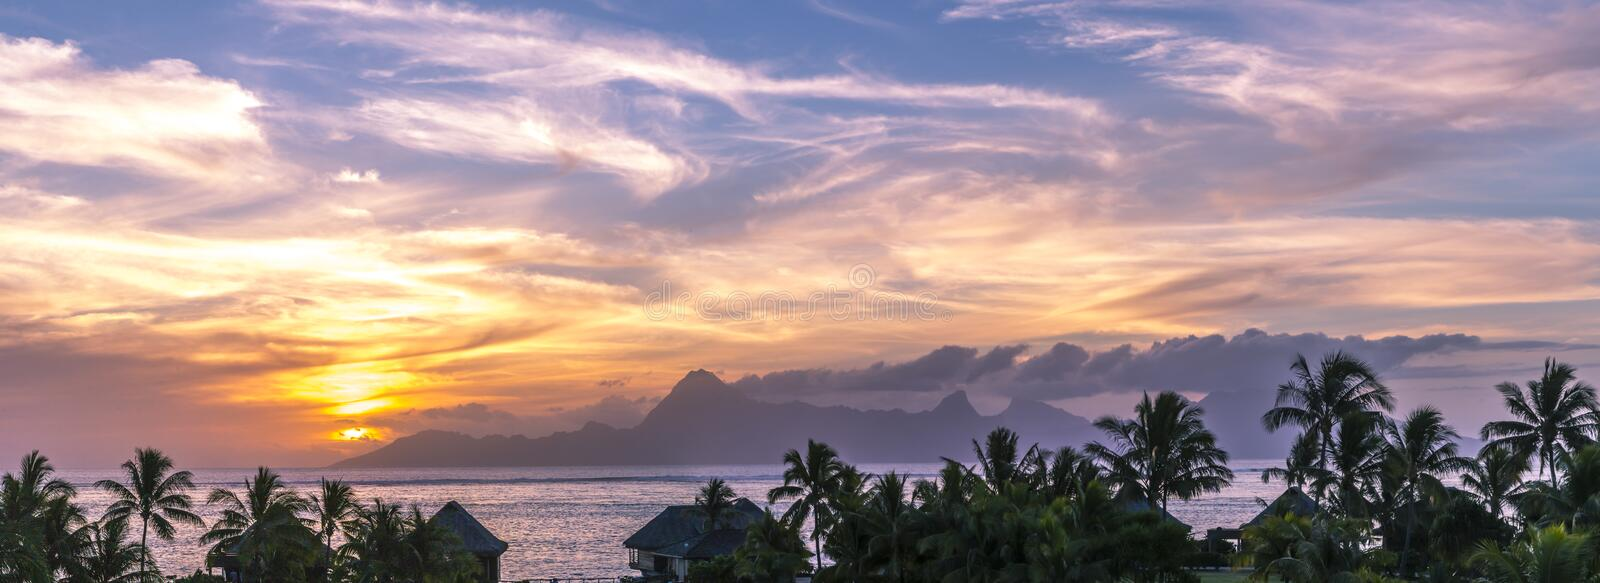 Tahiti Sunset Panorama. Panorama sunset view of the island of Moorea in French Polynesia as seen from Tahiti royalty free stock photography